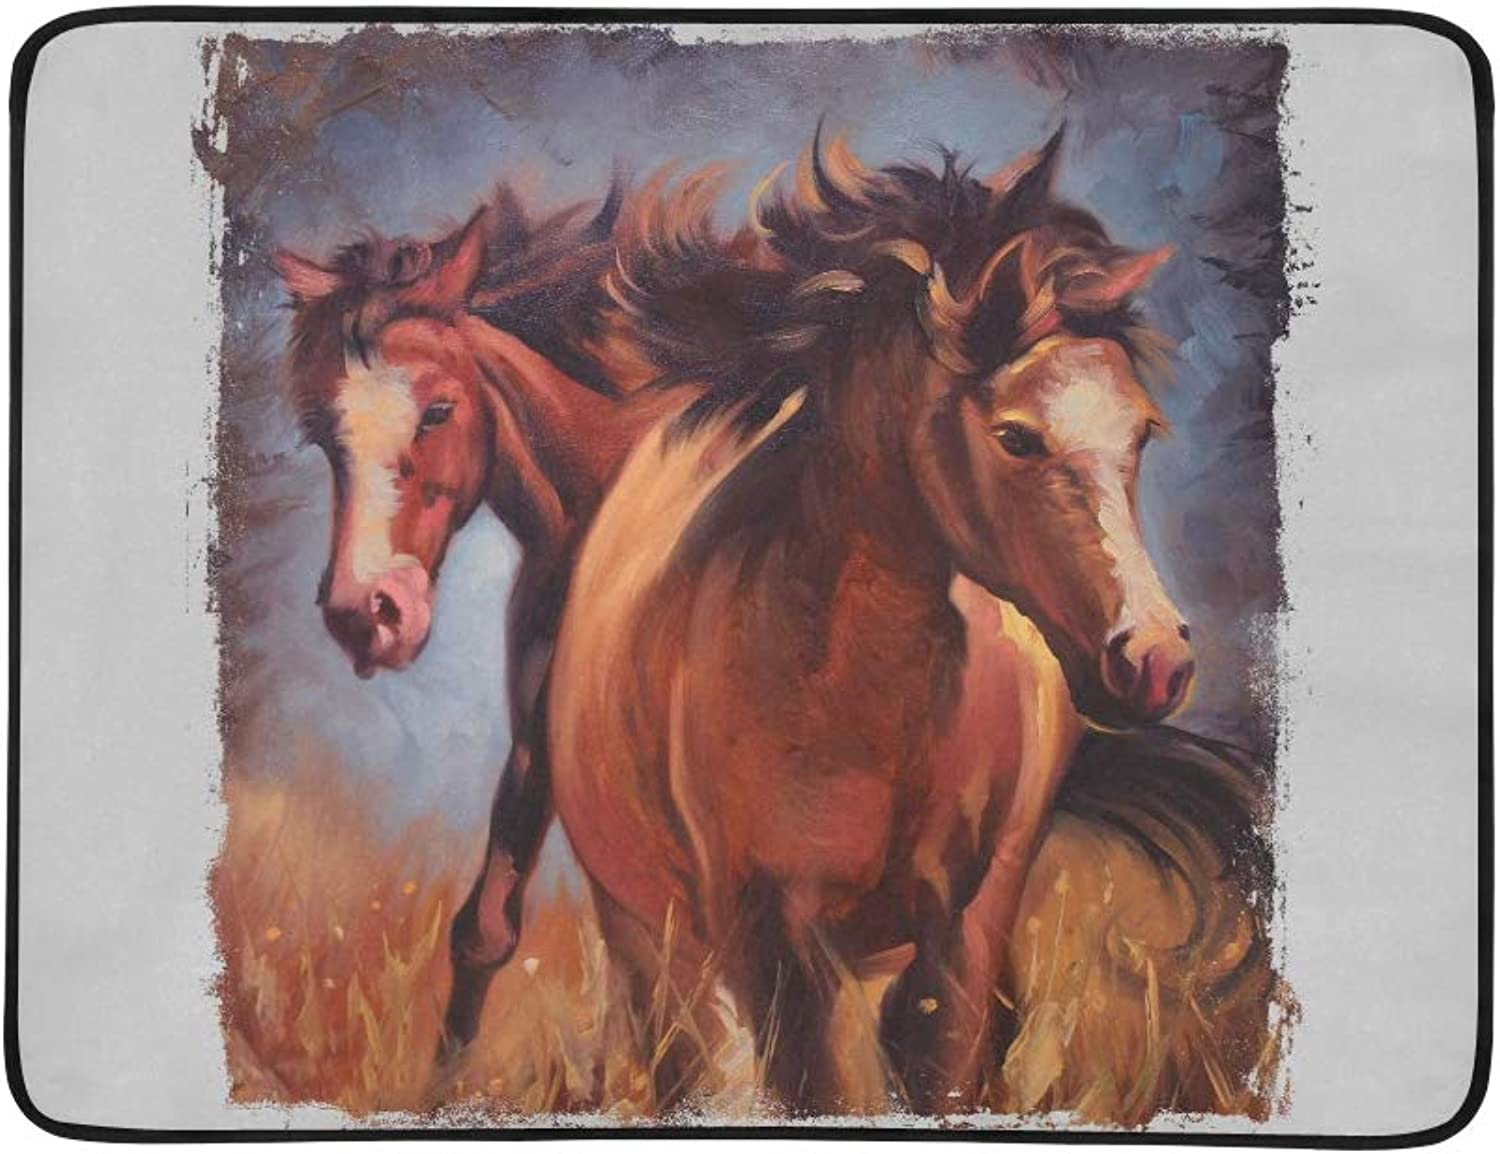 Two Horses Vintage Painting Torn Edges Pattern Portable and Foldable Blanket Mat 60x78 Inch Handy Mat for Camping Picnic Beach Indoor Outdoor Travel